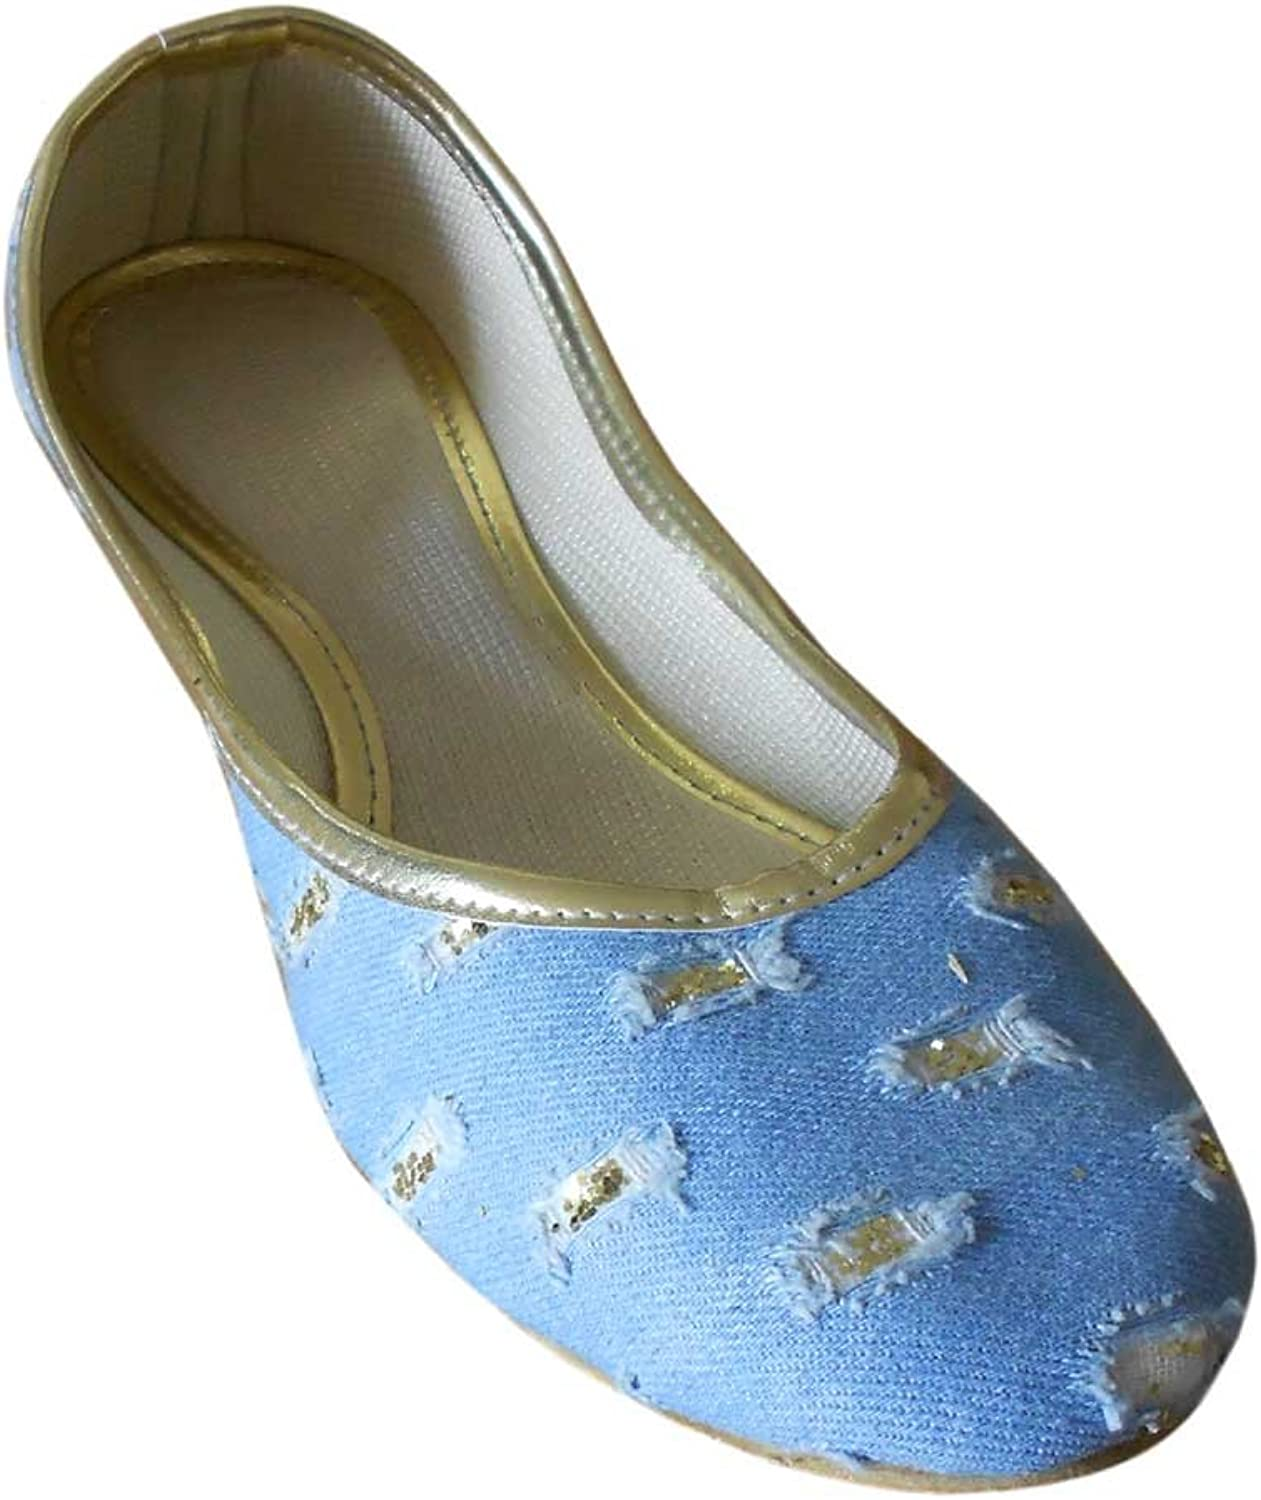 Kalra Creations Women's Traditional Indian Cotton Cloth Ethnic shoes